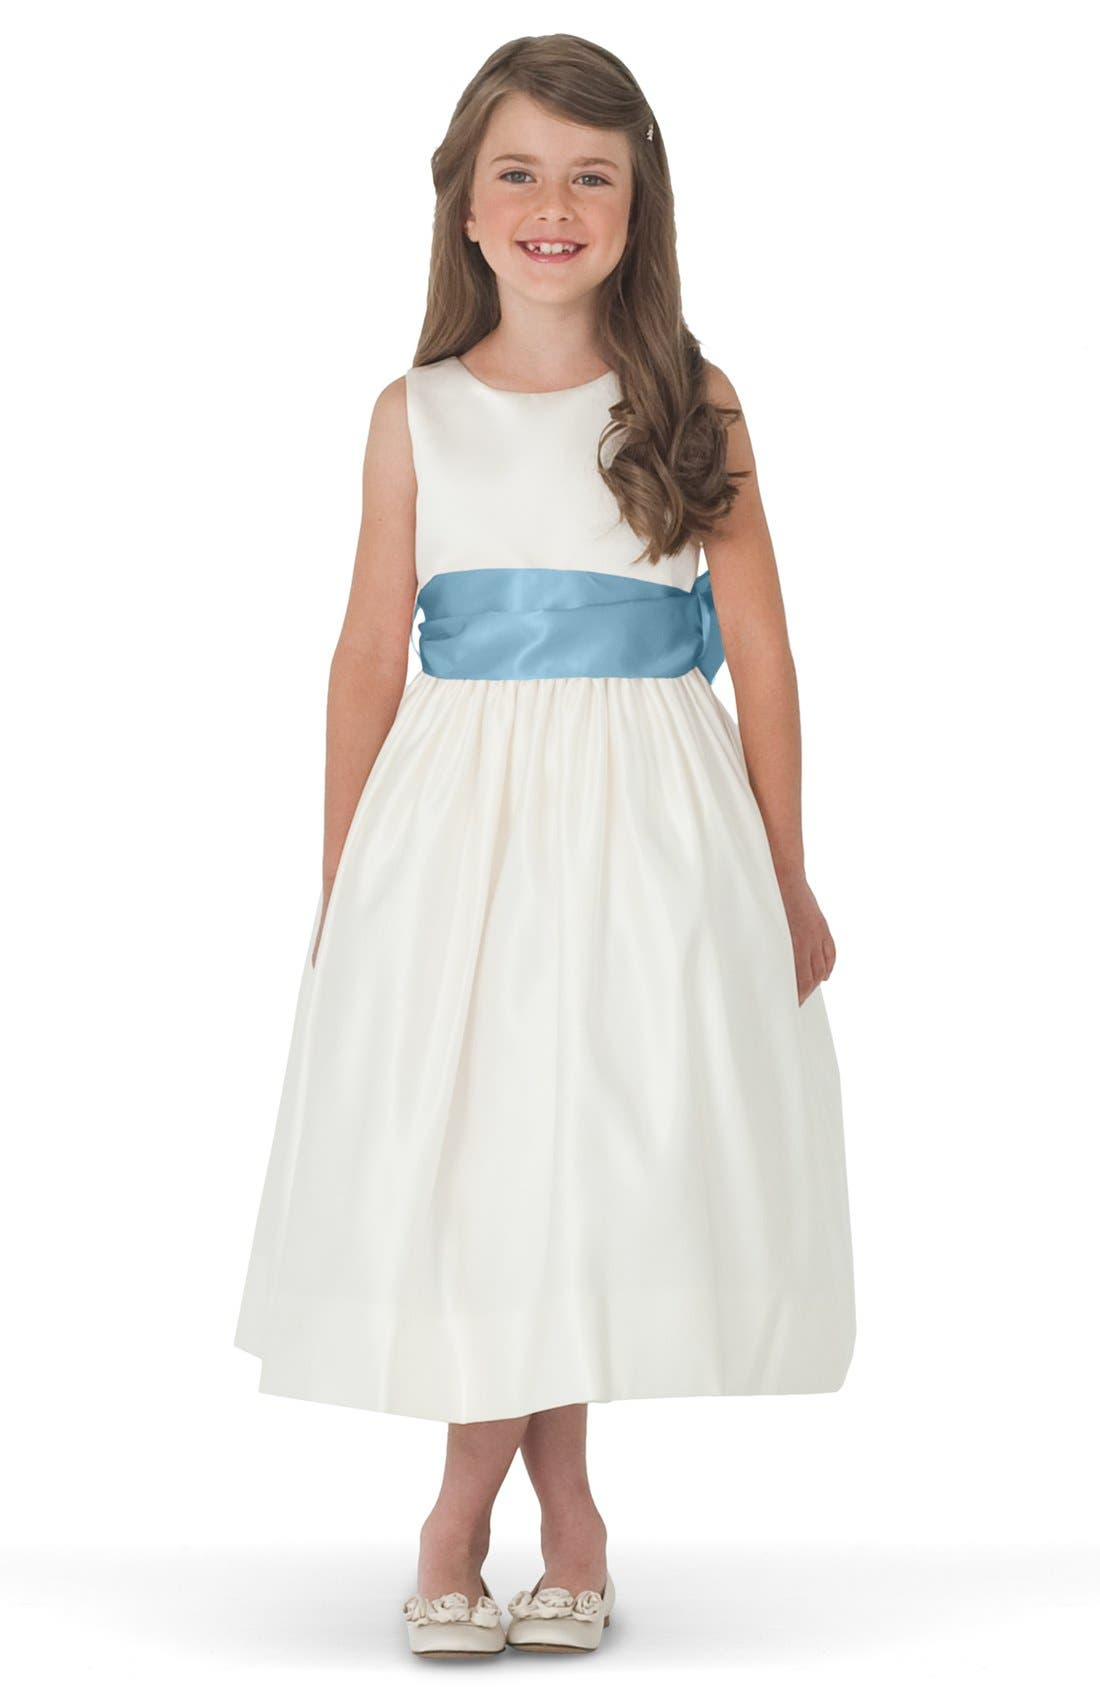 US ANGELS, Sleeveless Satin Dress with Contrast Sash, Main thumbnail 1, color, Ivory/ capri